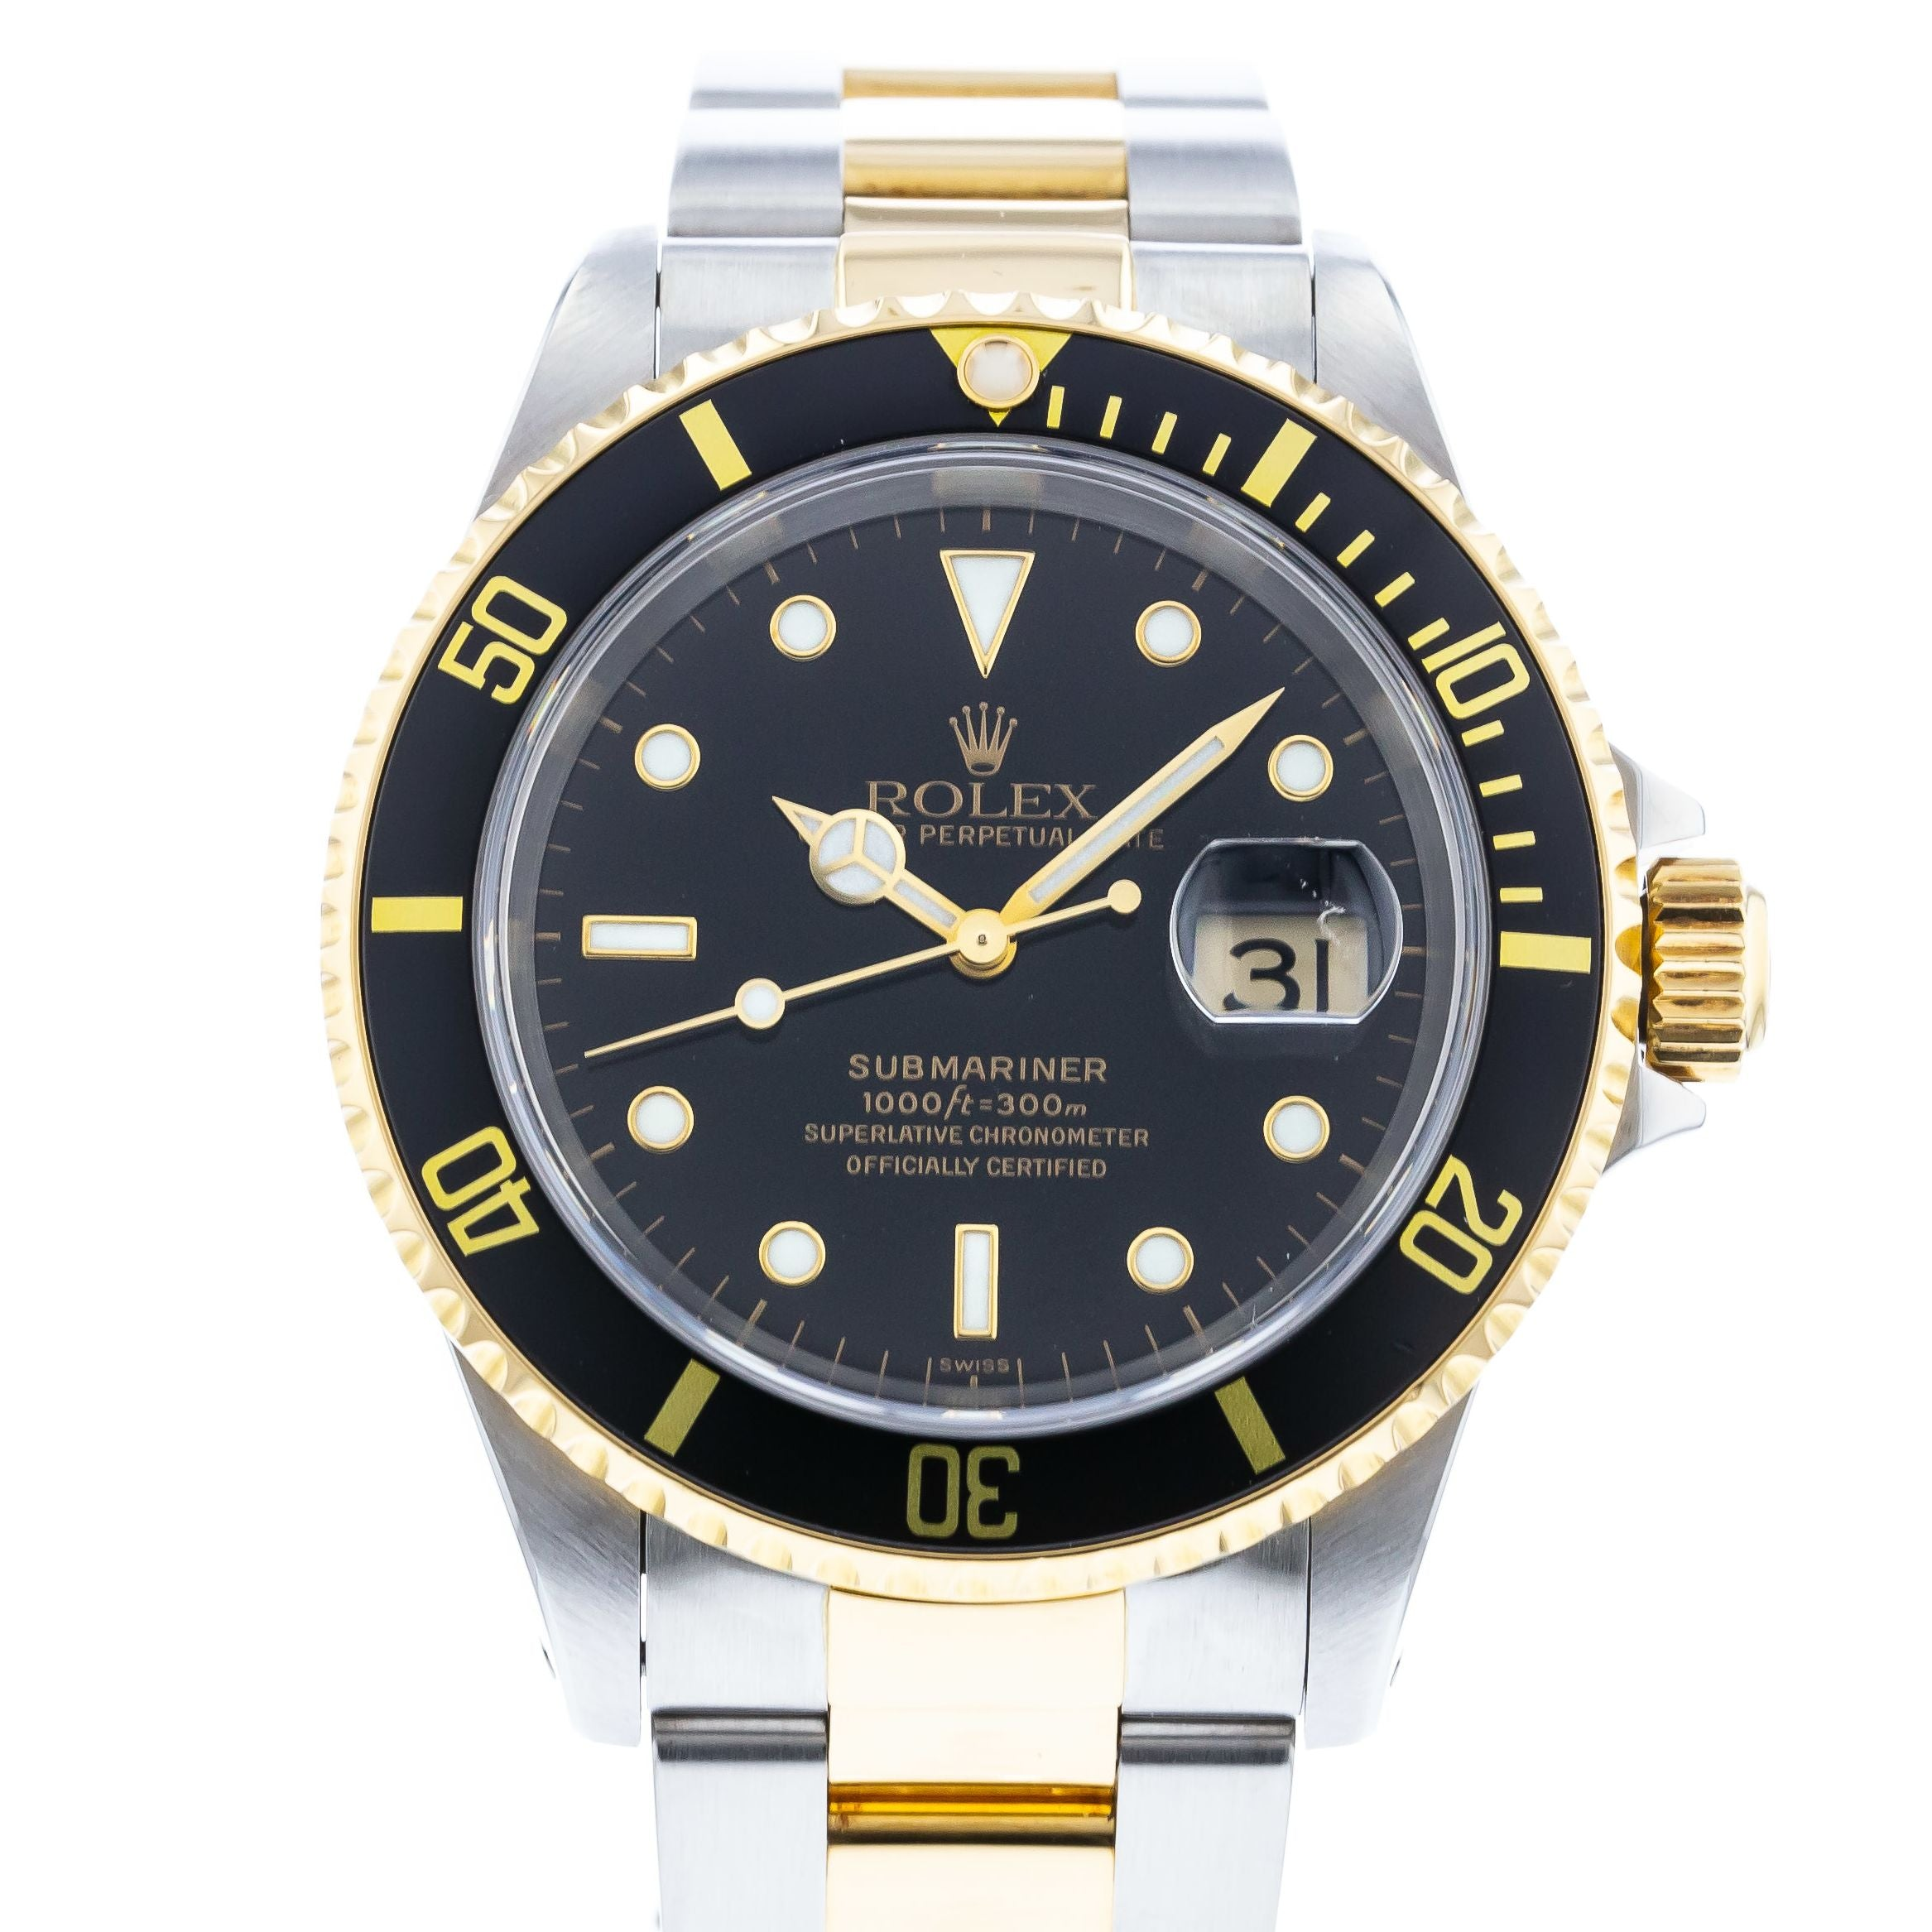 94848858efe Authentic Used Rolex Submariner 16613 Watch (10-10-ROL-GHS5EF)